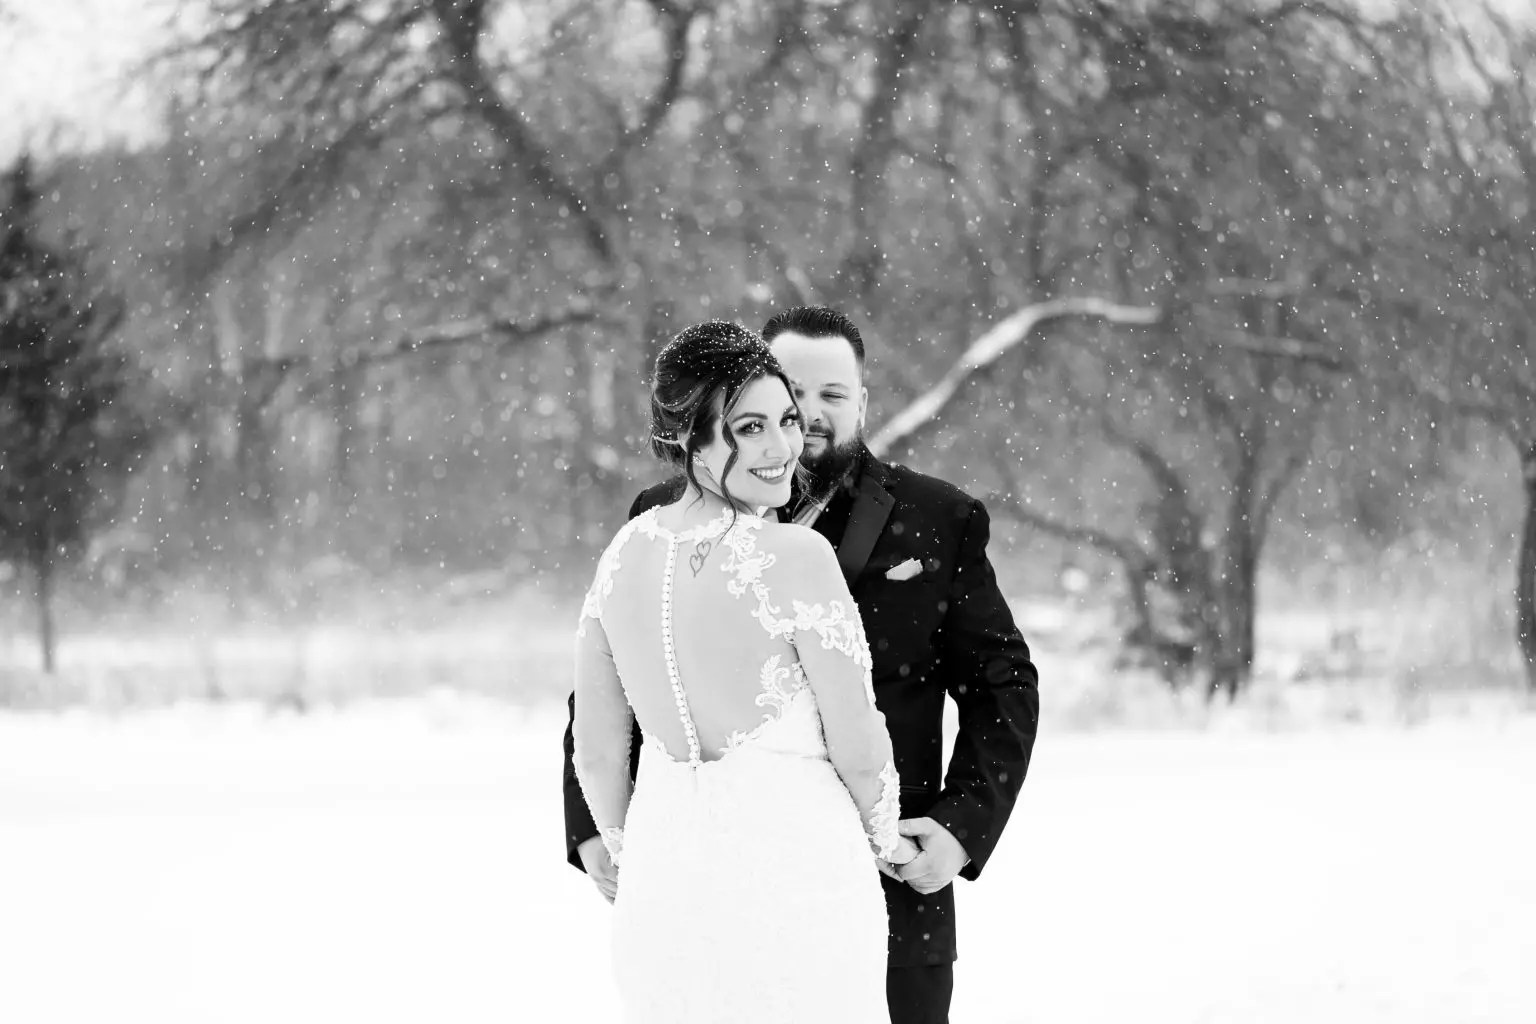 New Years Eve wedding at Woldumar Nature Center in Lansing, MI.